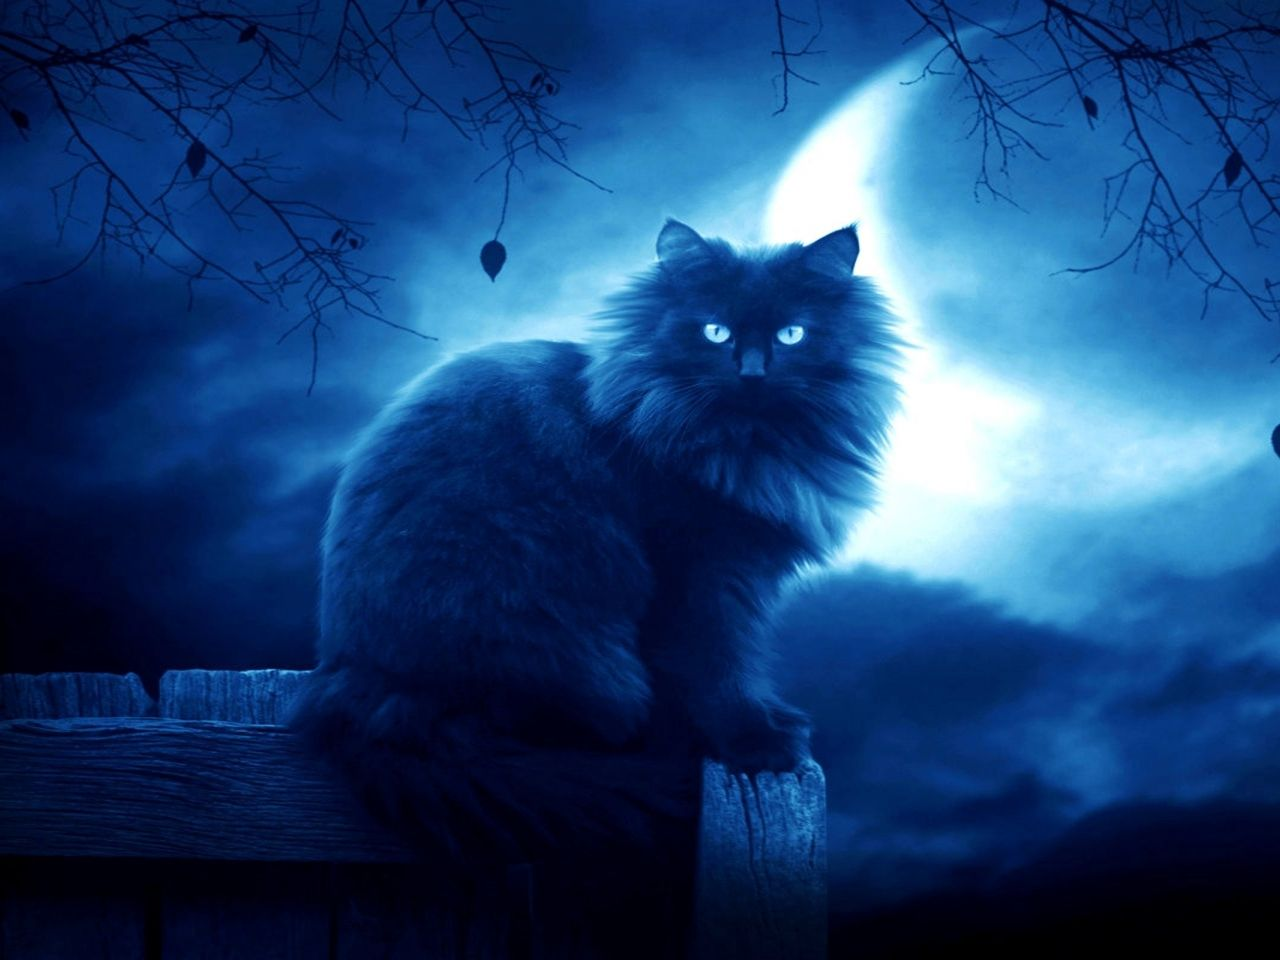 Wallpaper 1280x960 Cat Black Moon Night Silhouette Outlines